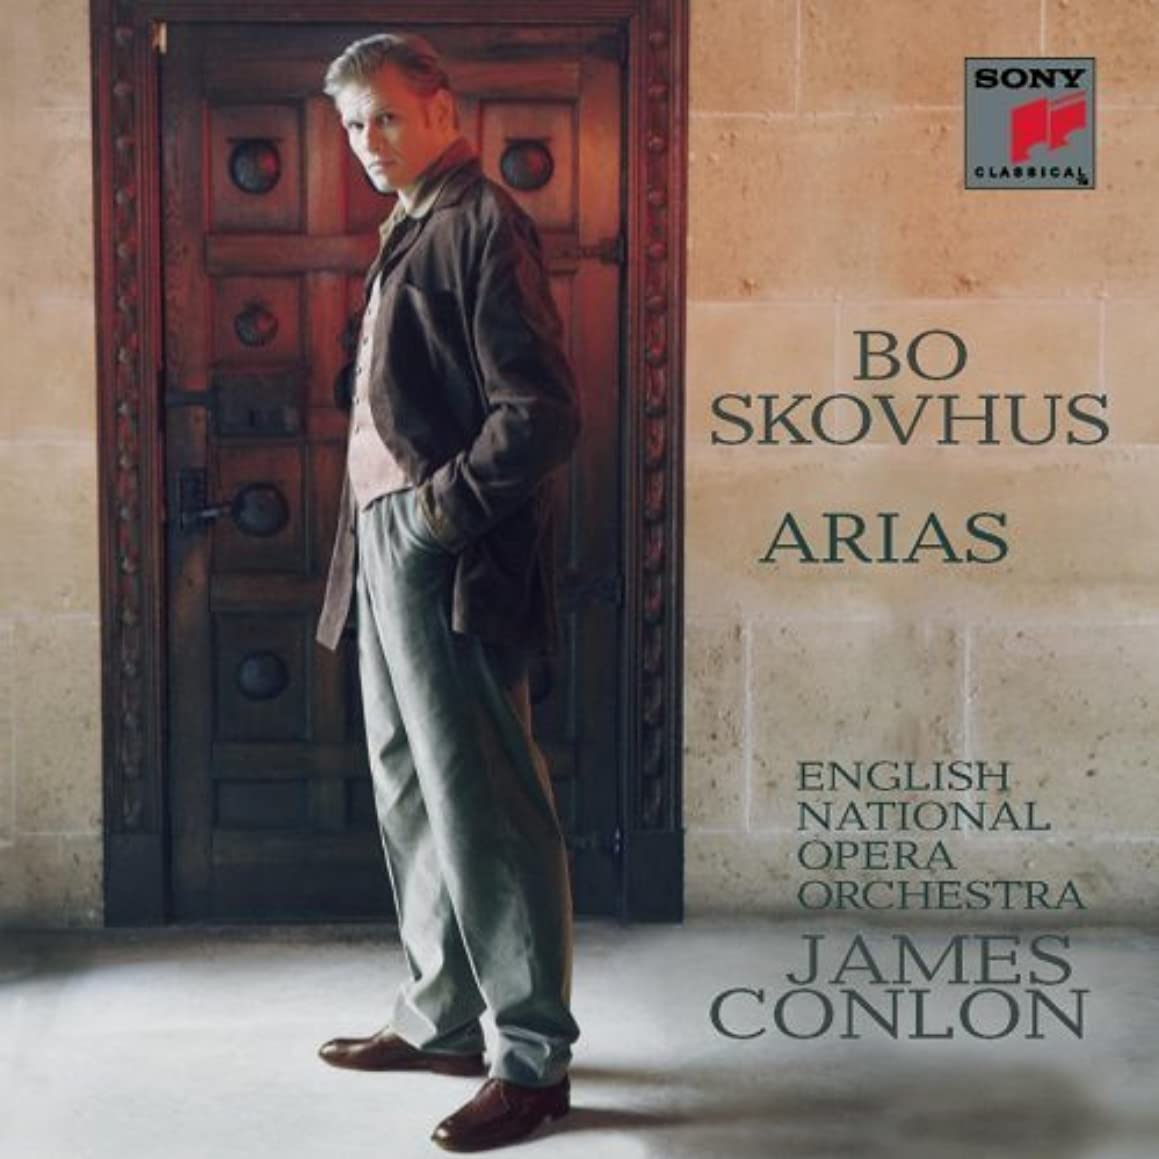 Bo Skovhus ~ Arias (1998) Audio CD